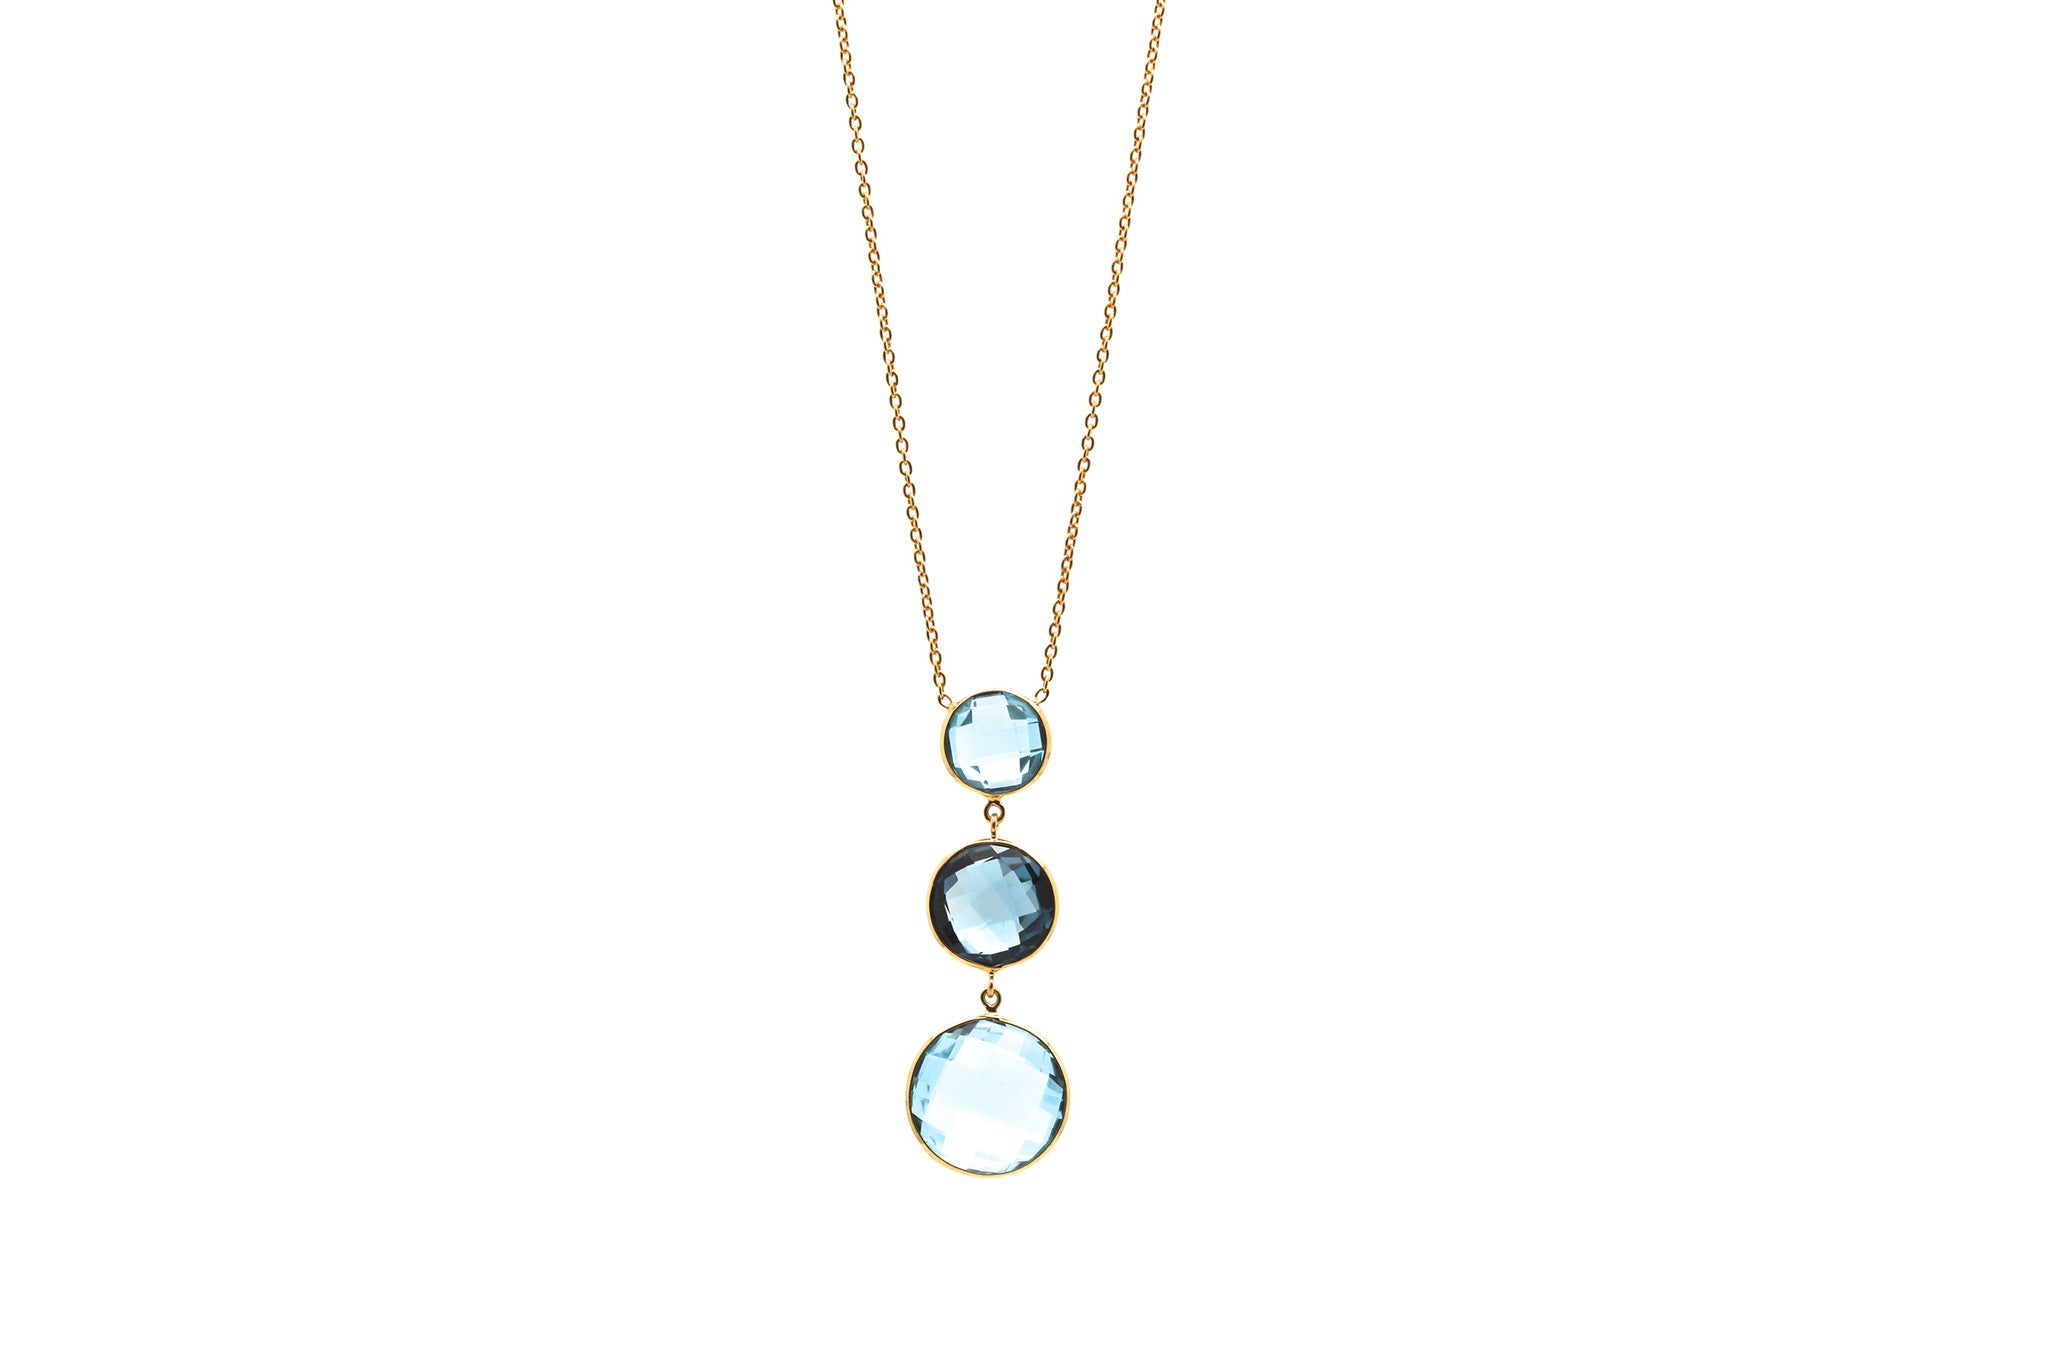 18K Yellow Gold Necklace With London Blue Topaz & Sky Blue Topaz